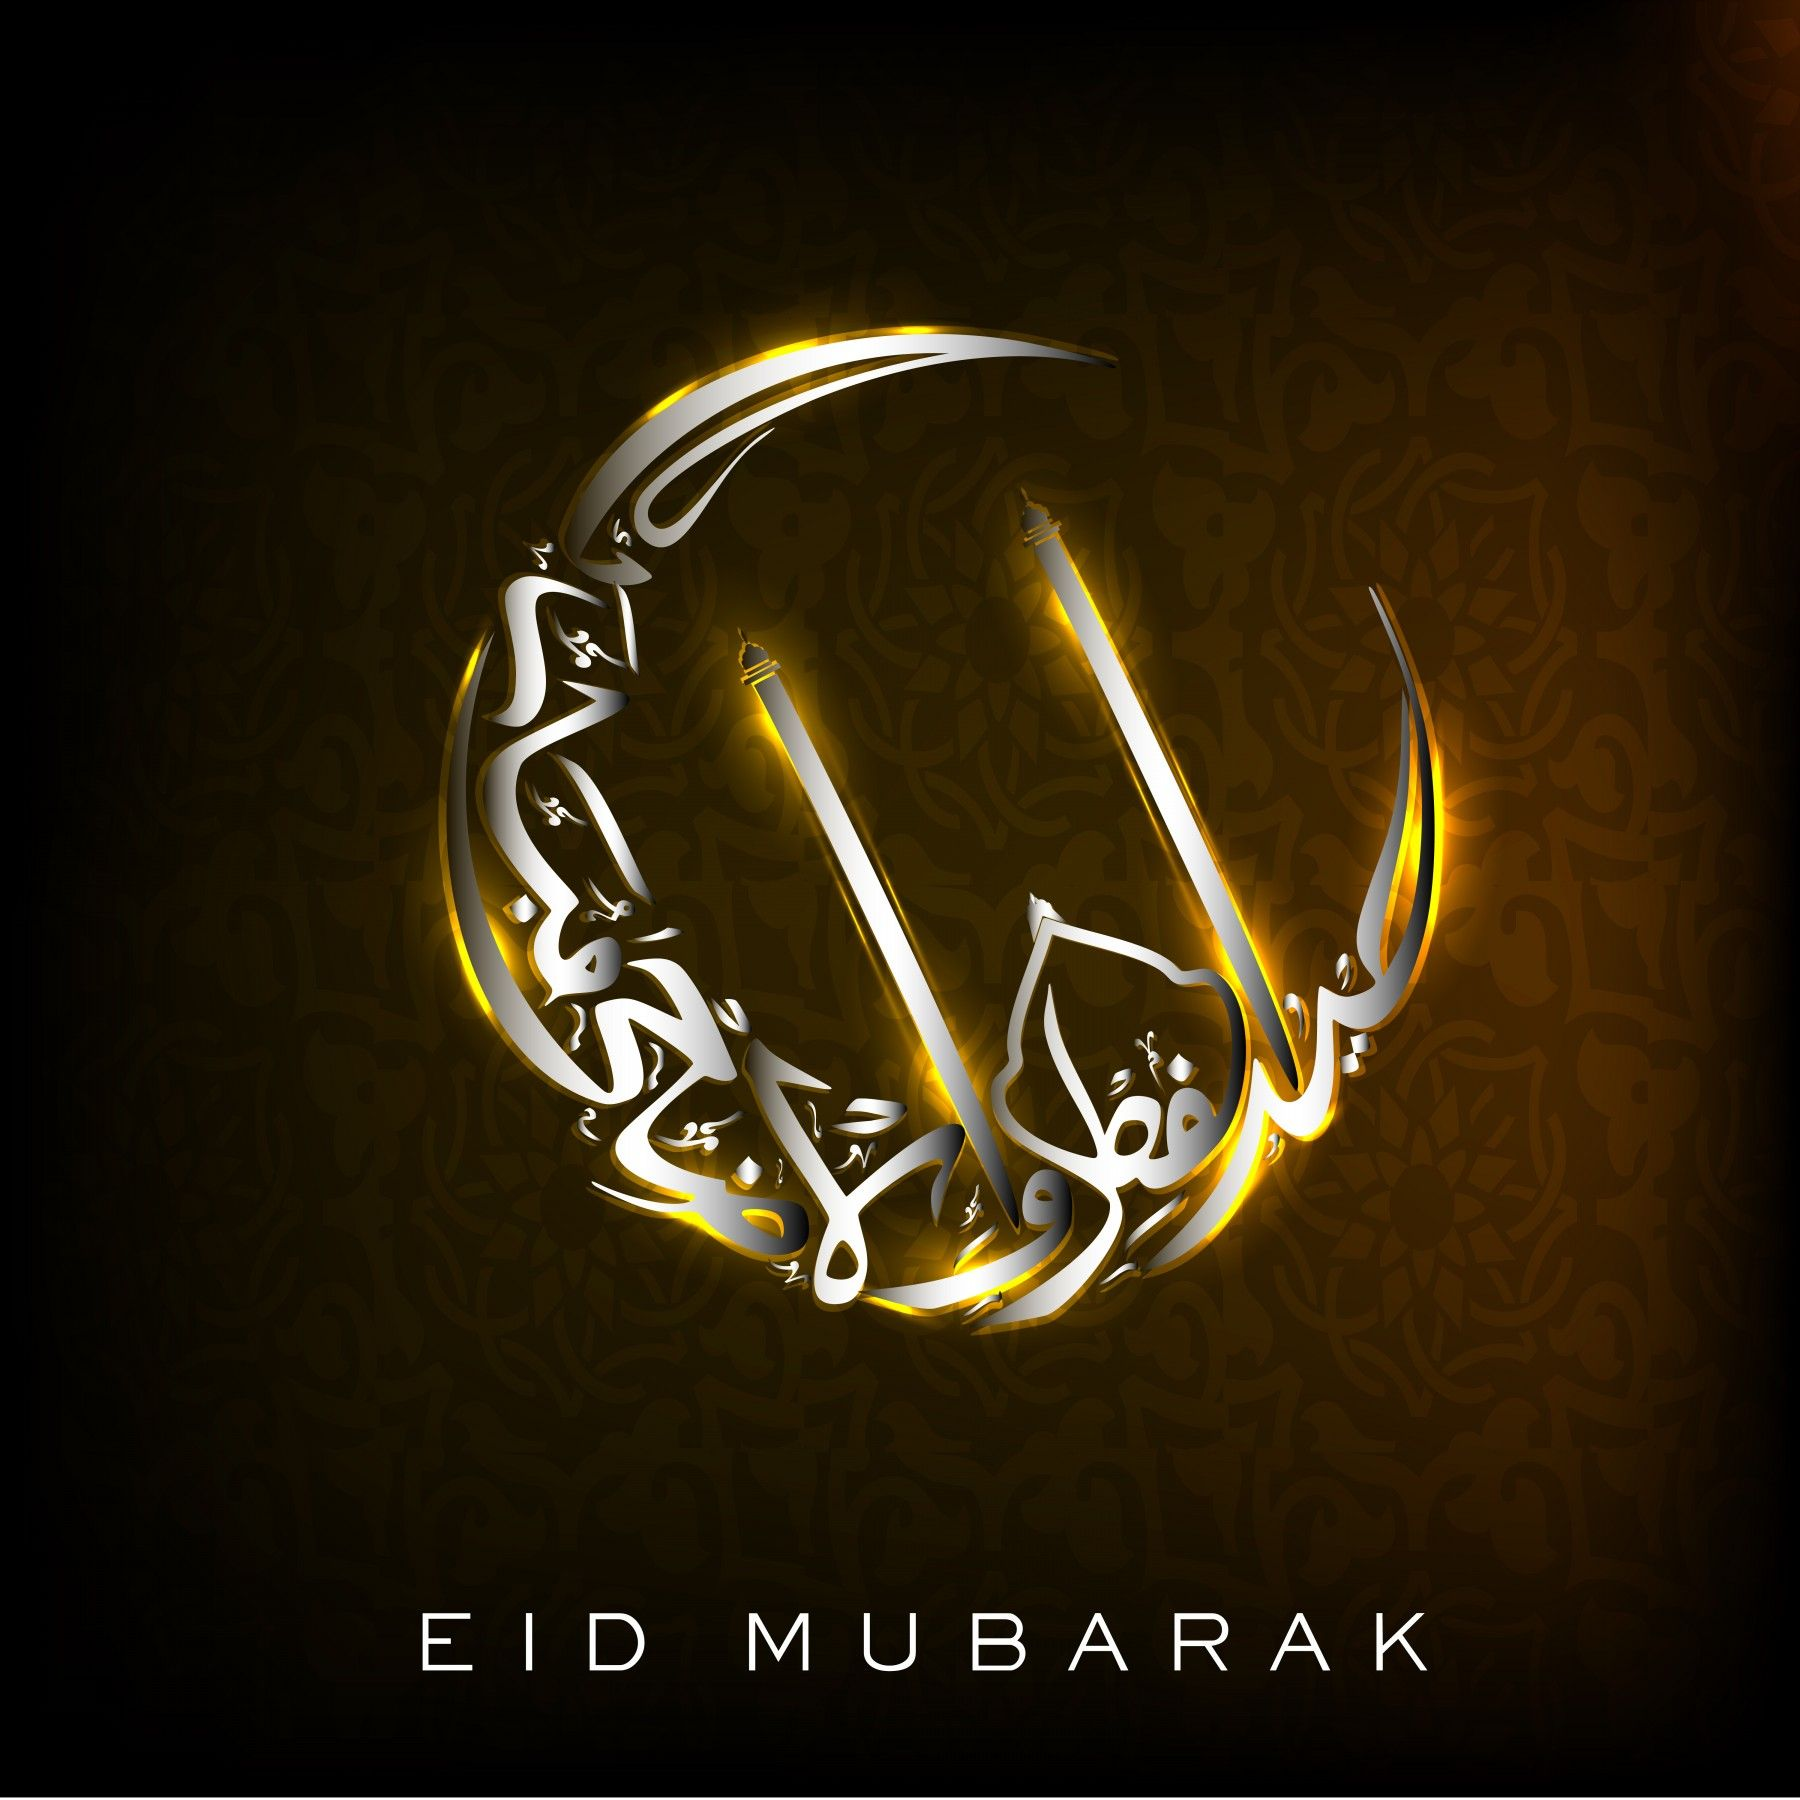 Eid al adha photos hd eid mubarak wishes wallpaper pinterest eid al adha photos hd eid mubarak wishes wallpaper kristyandbryce Image collections